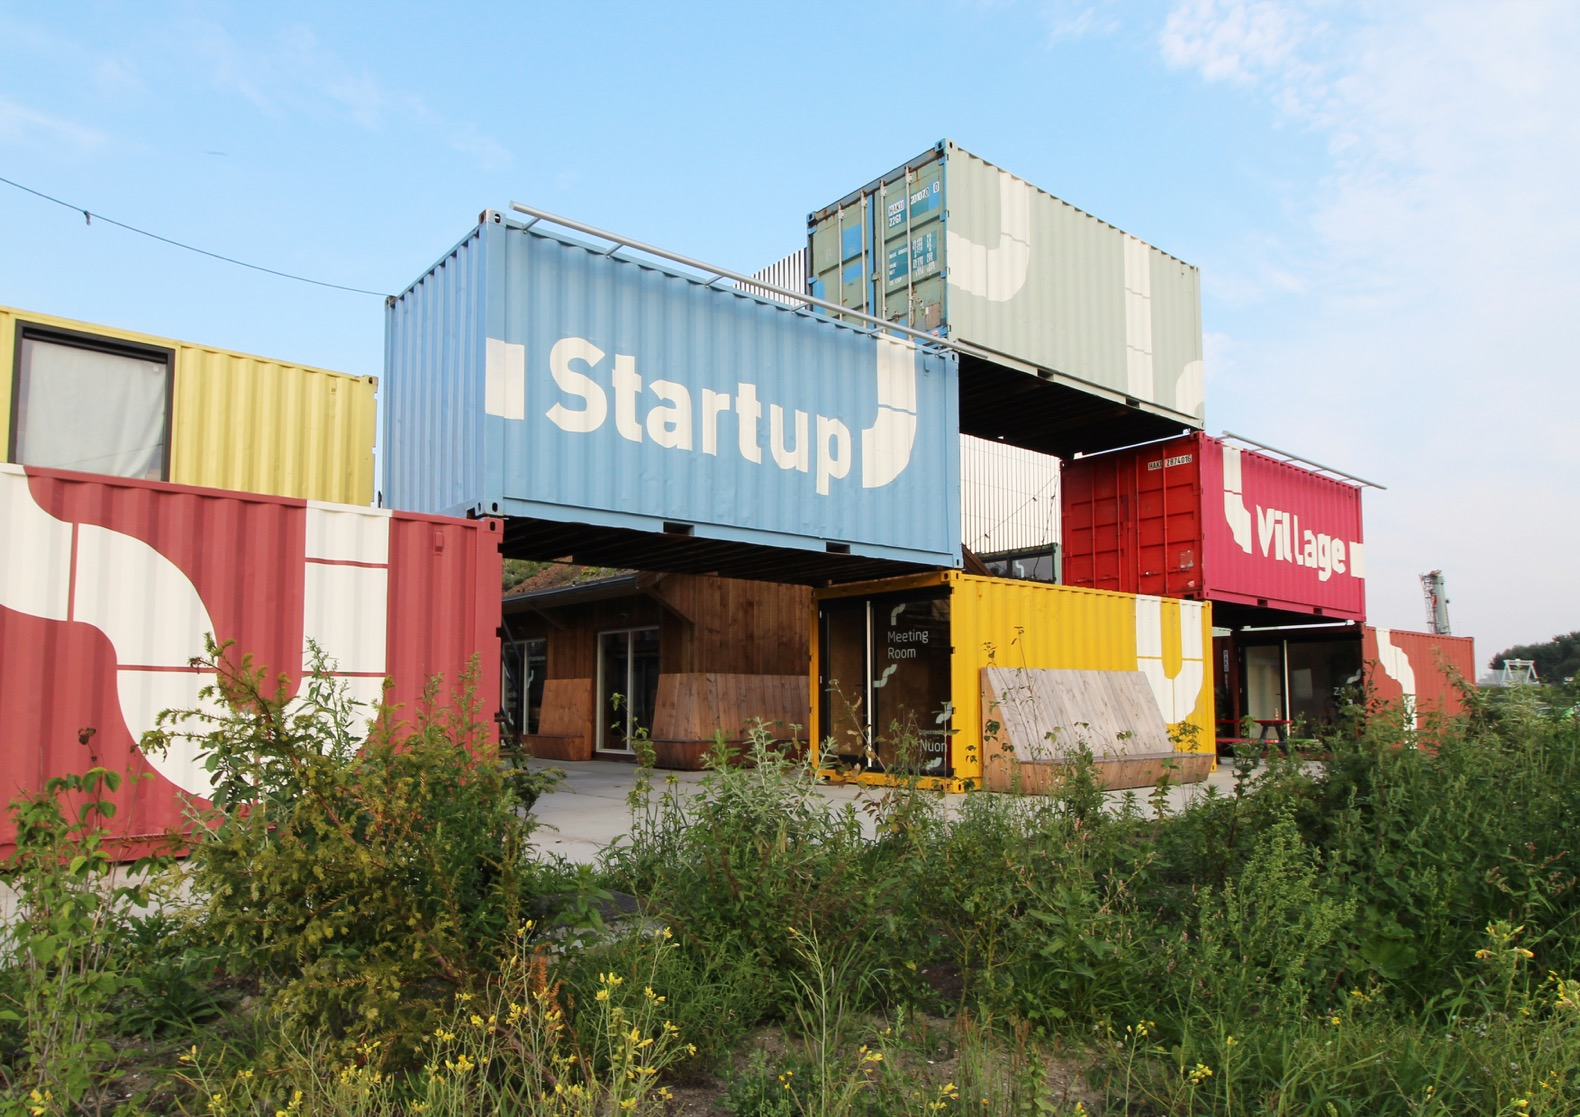 Shipping container village for startups pops up in Amsterdam